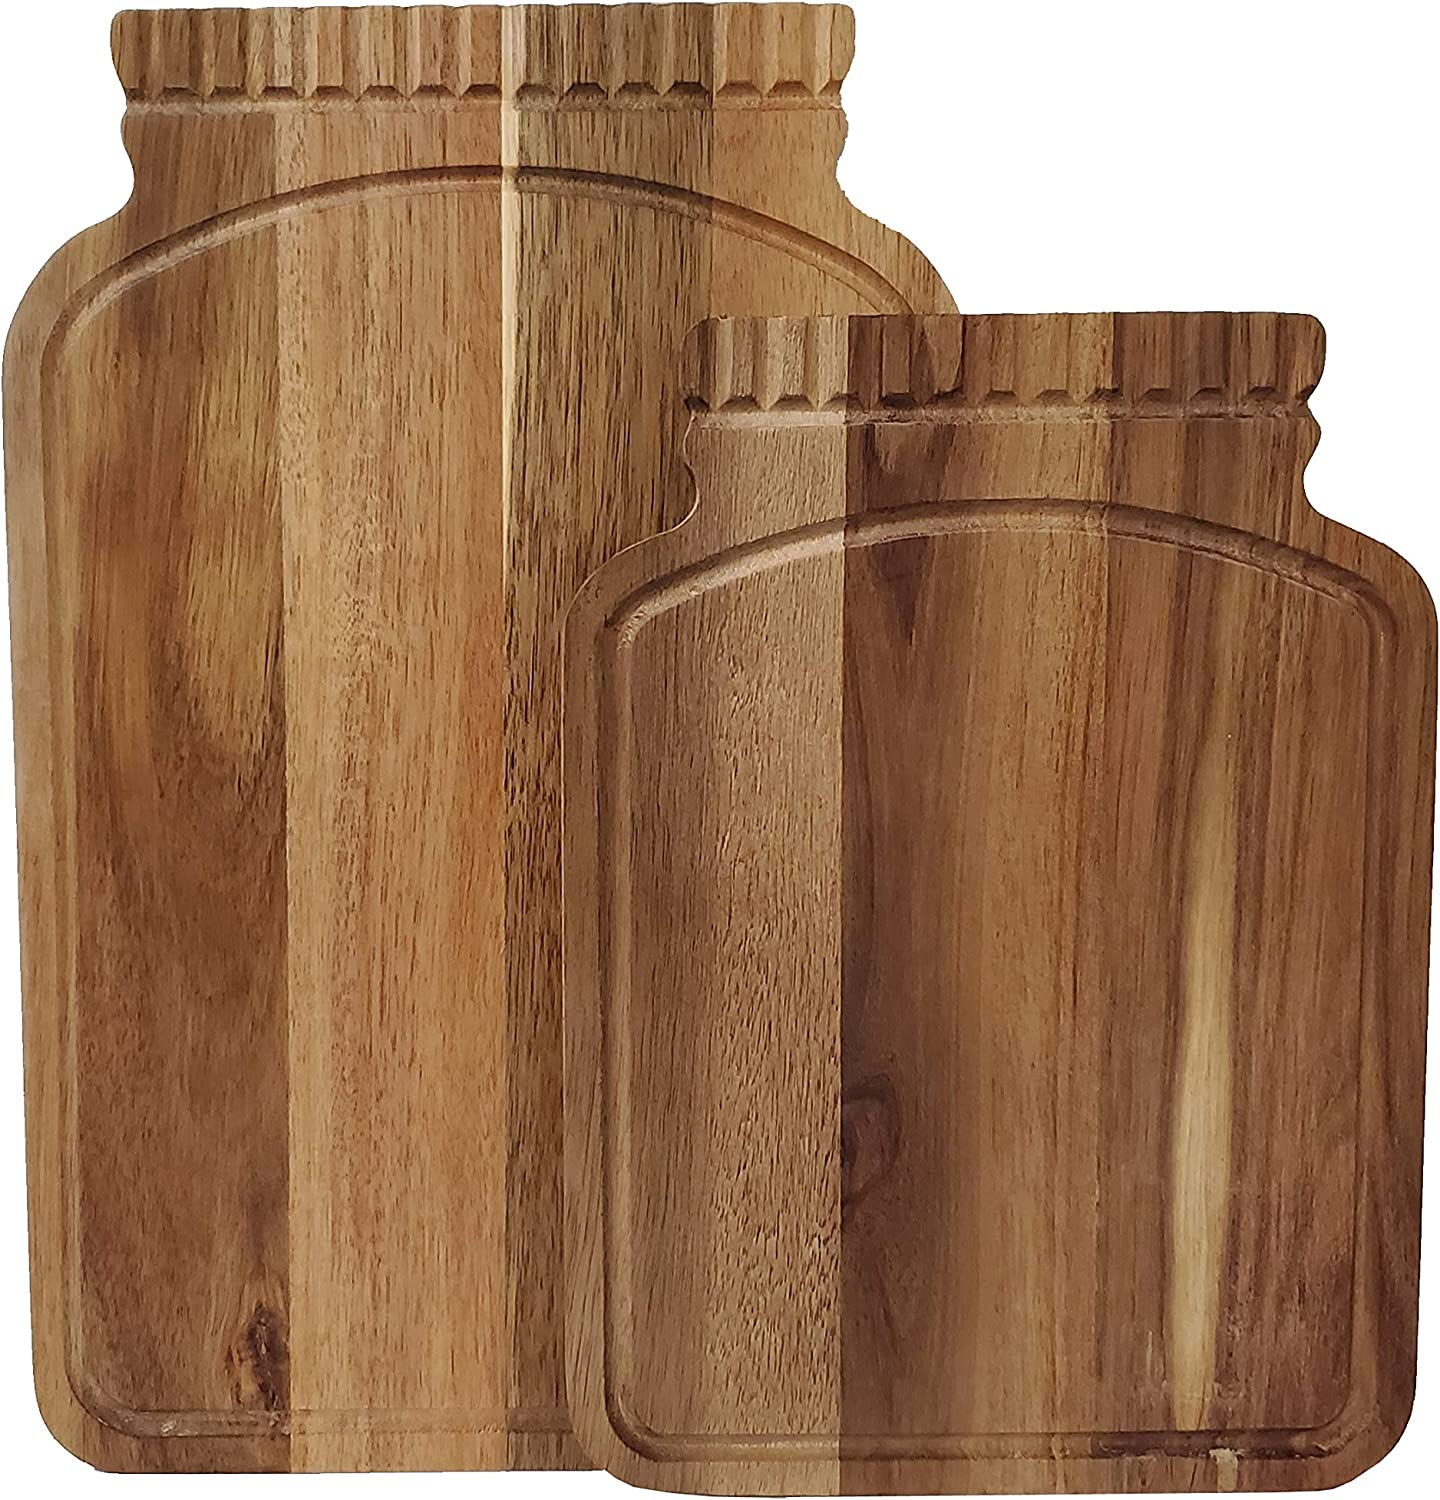 Mason Craft & More Acacia Wood Kitchen Dining Serveware Plank Tray Serving Entertaining Faux Leather Handles, Mason Jar Shaped Cutting Boards Set of 2